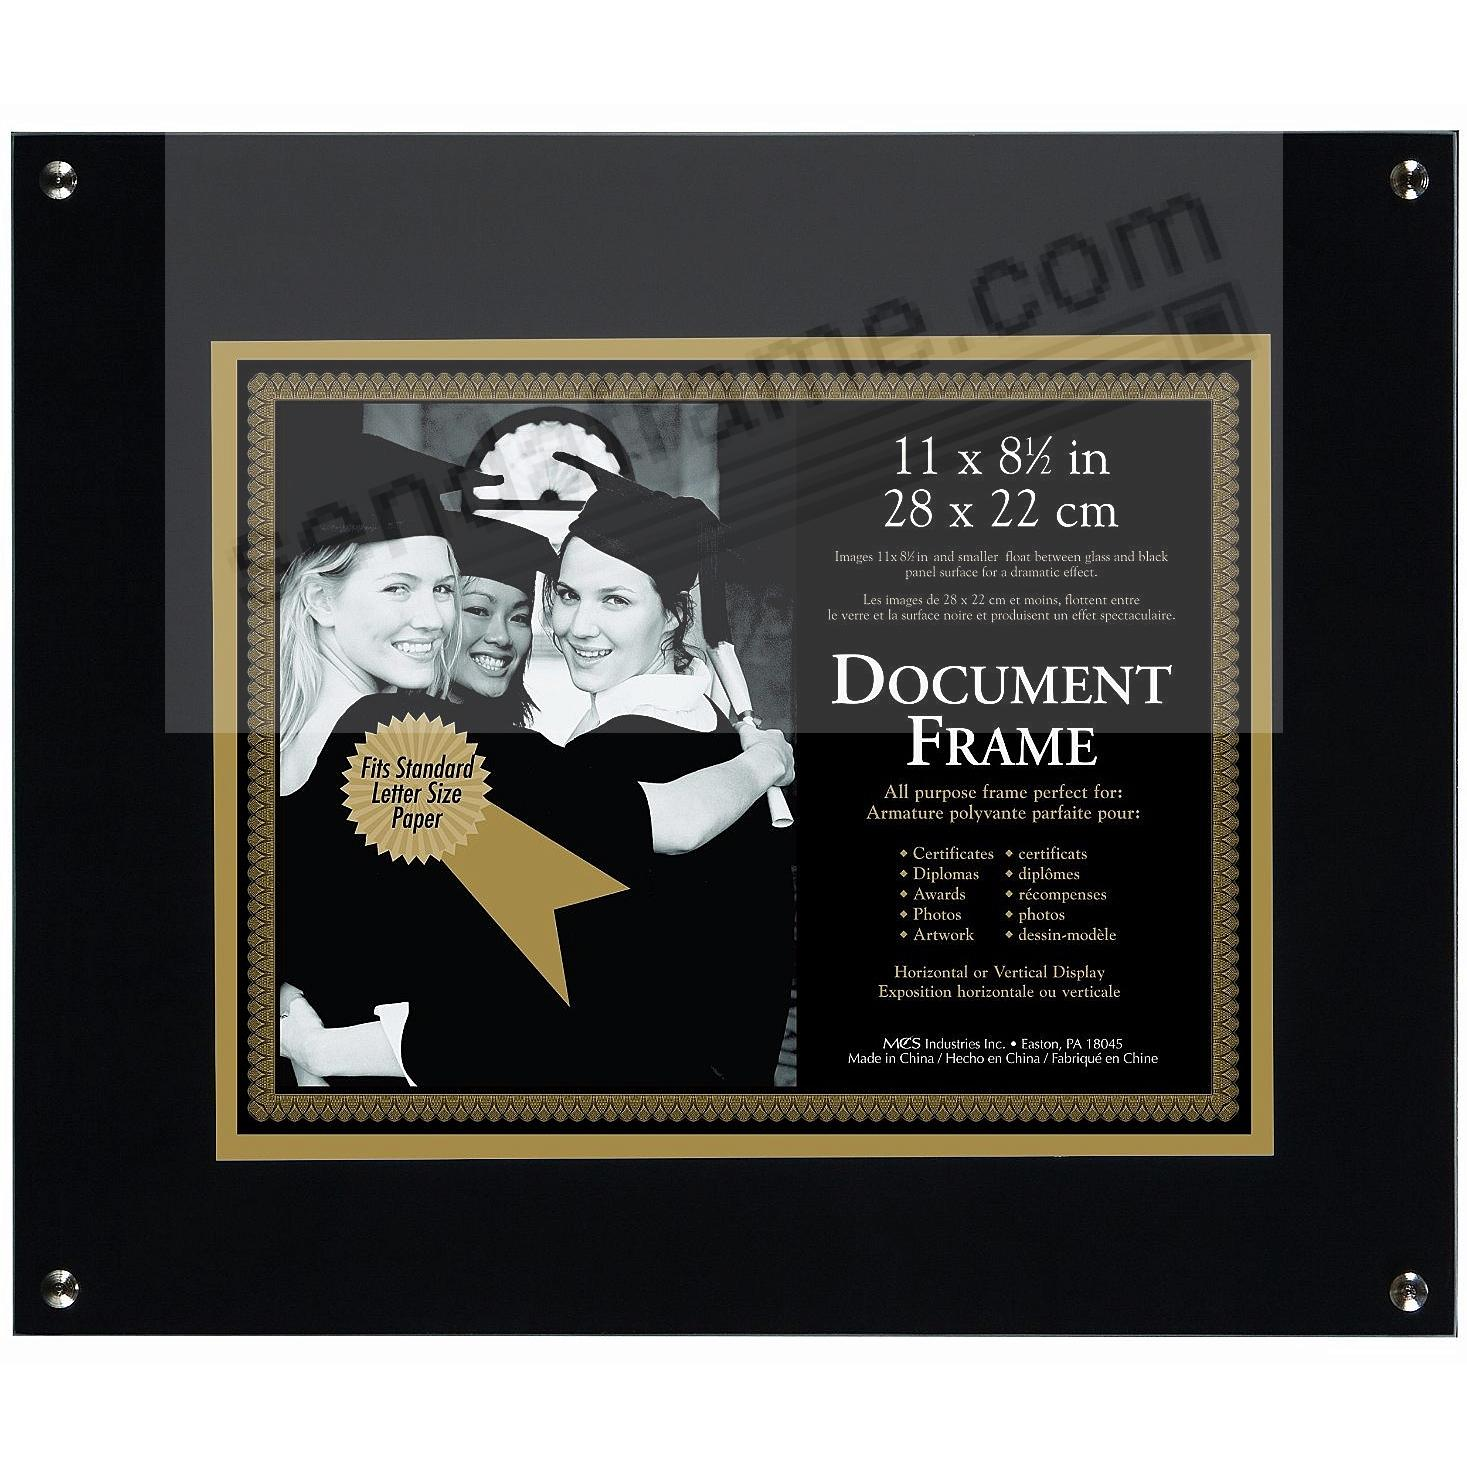 ONYX FLOAT Document frame for 11x8½ prints by MCS®